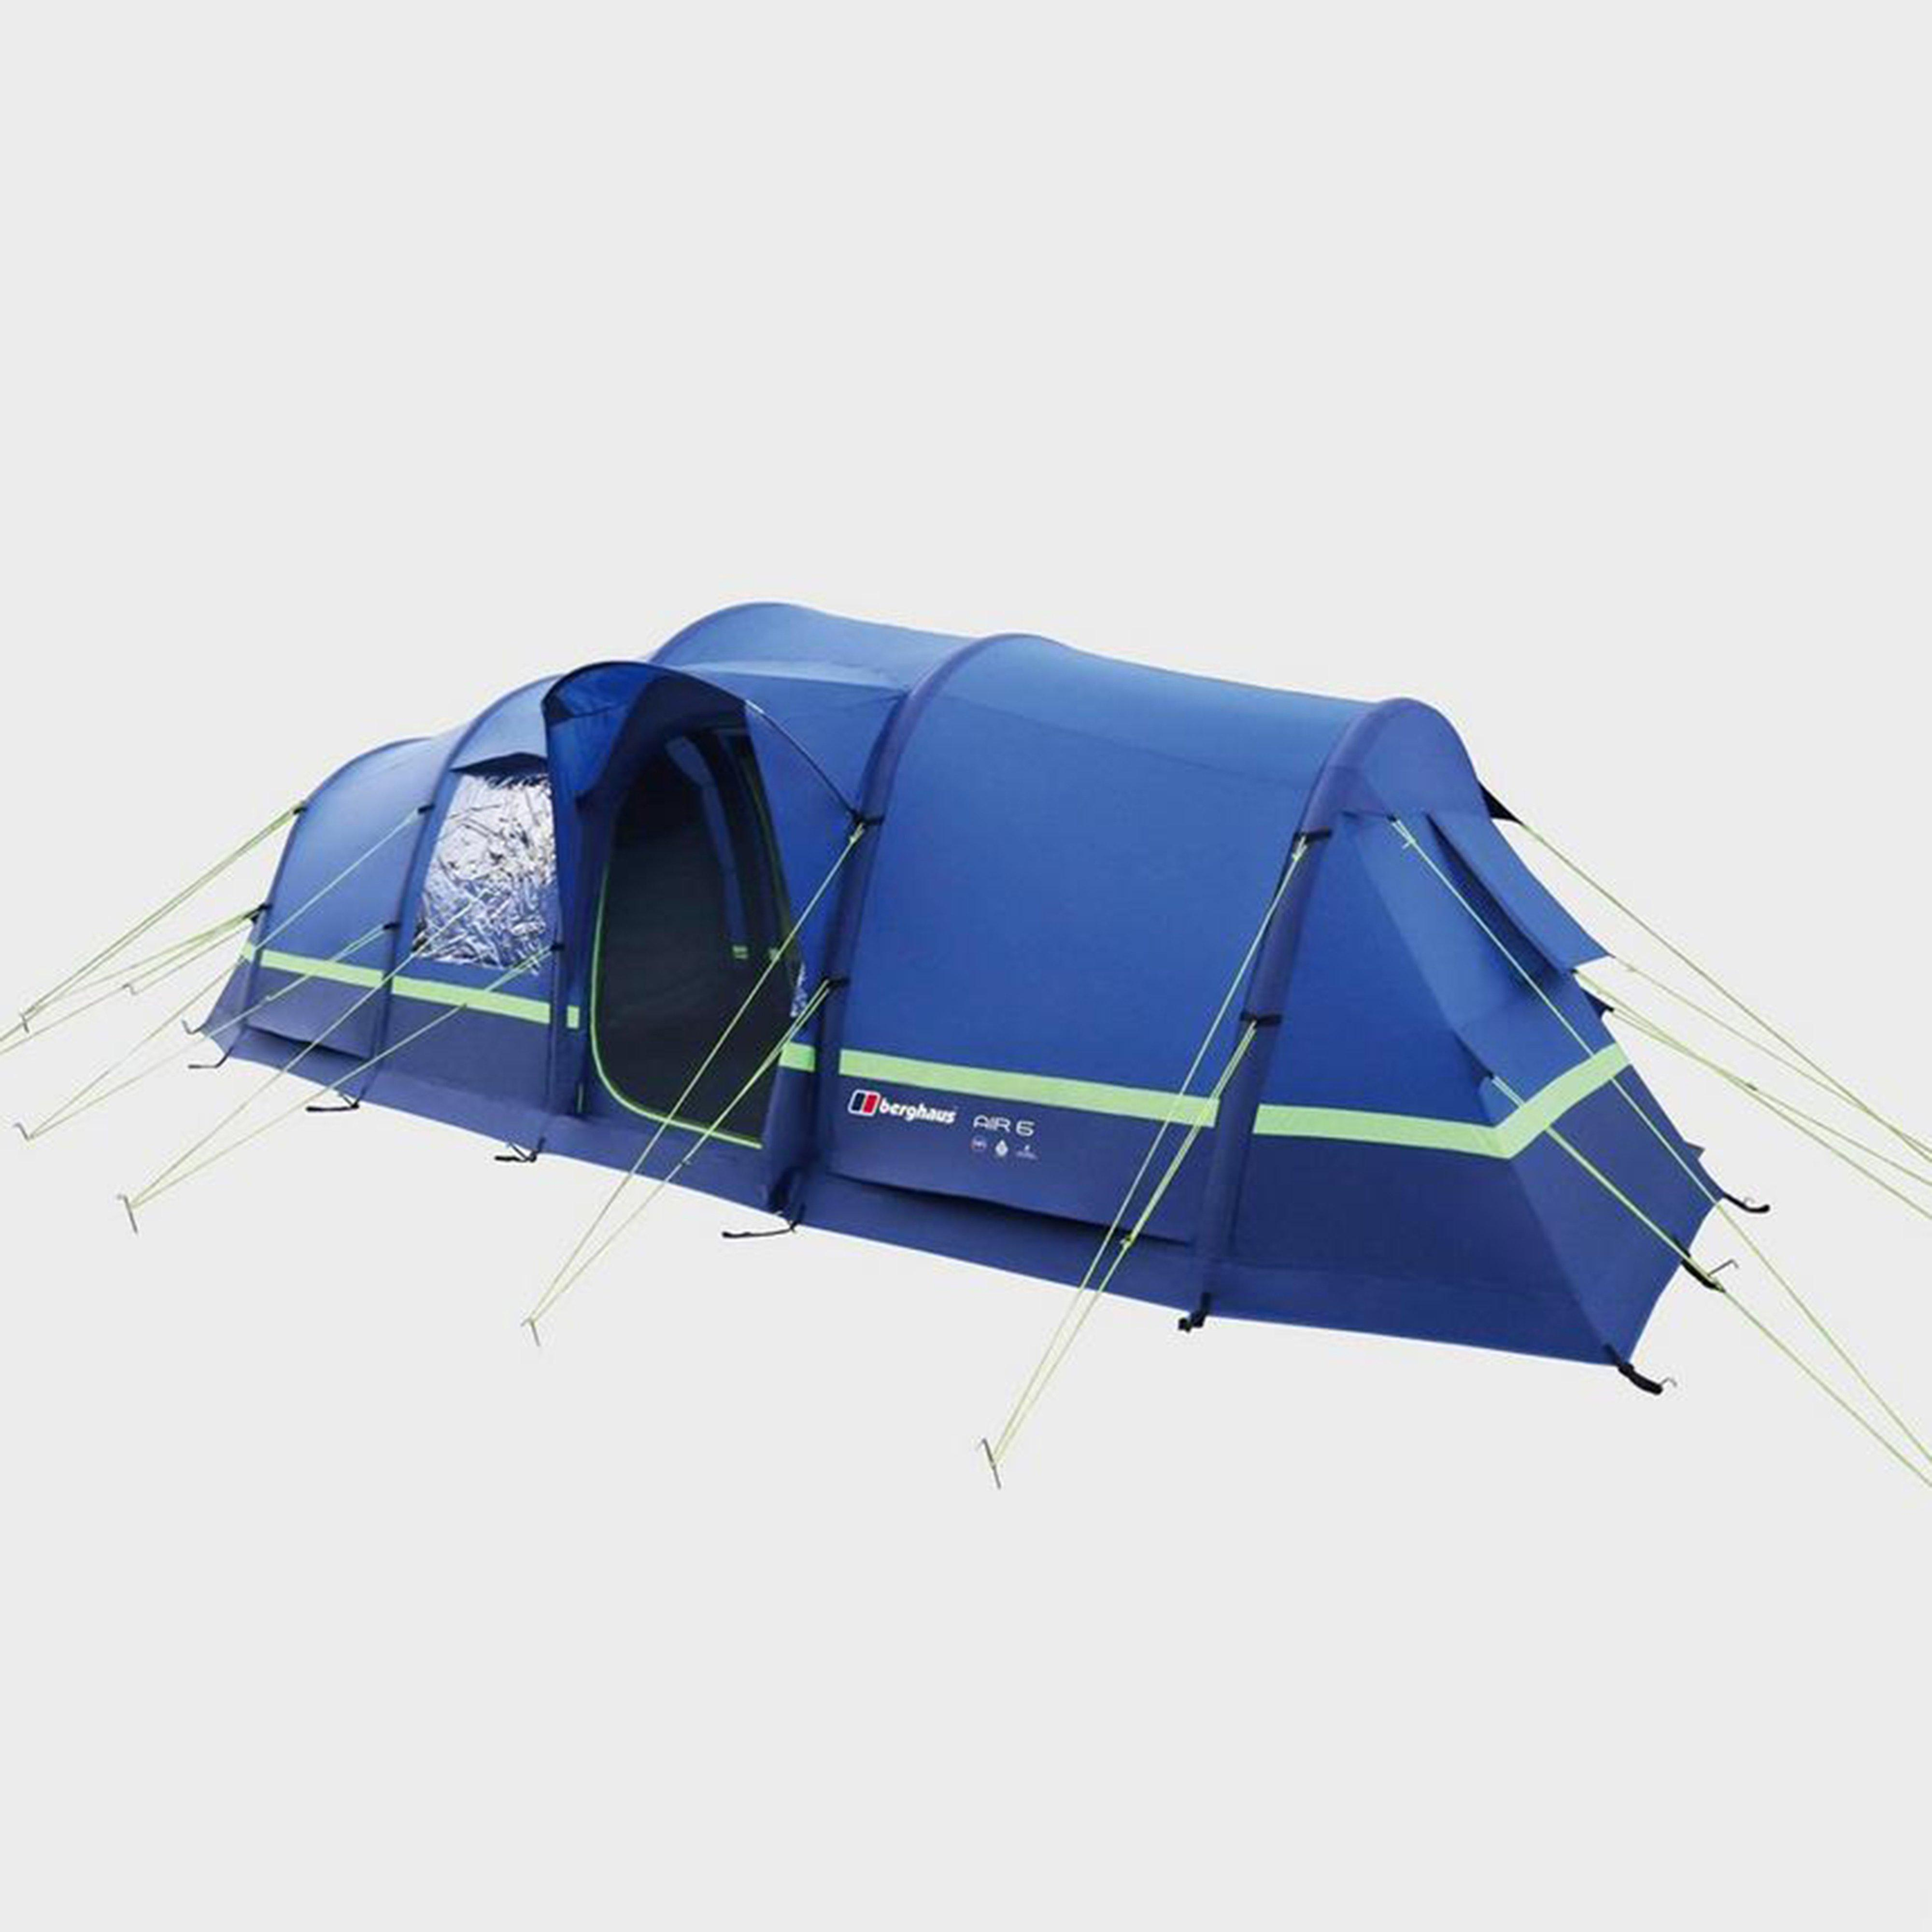 Berghaus Air 6 Inflatable Family Tent - Blue, Blue